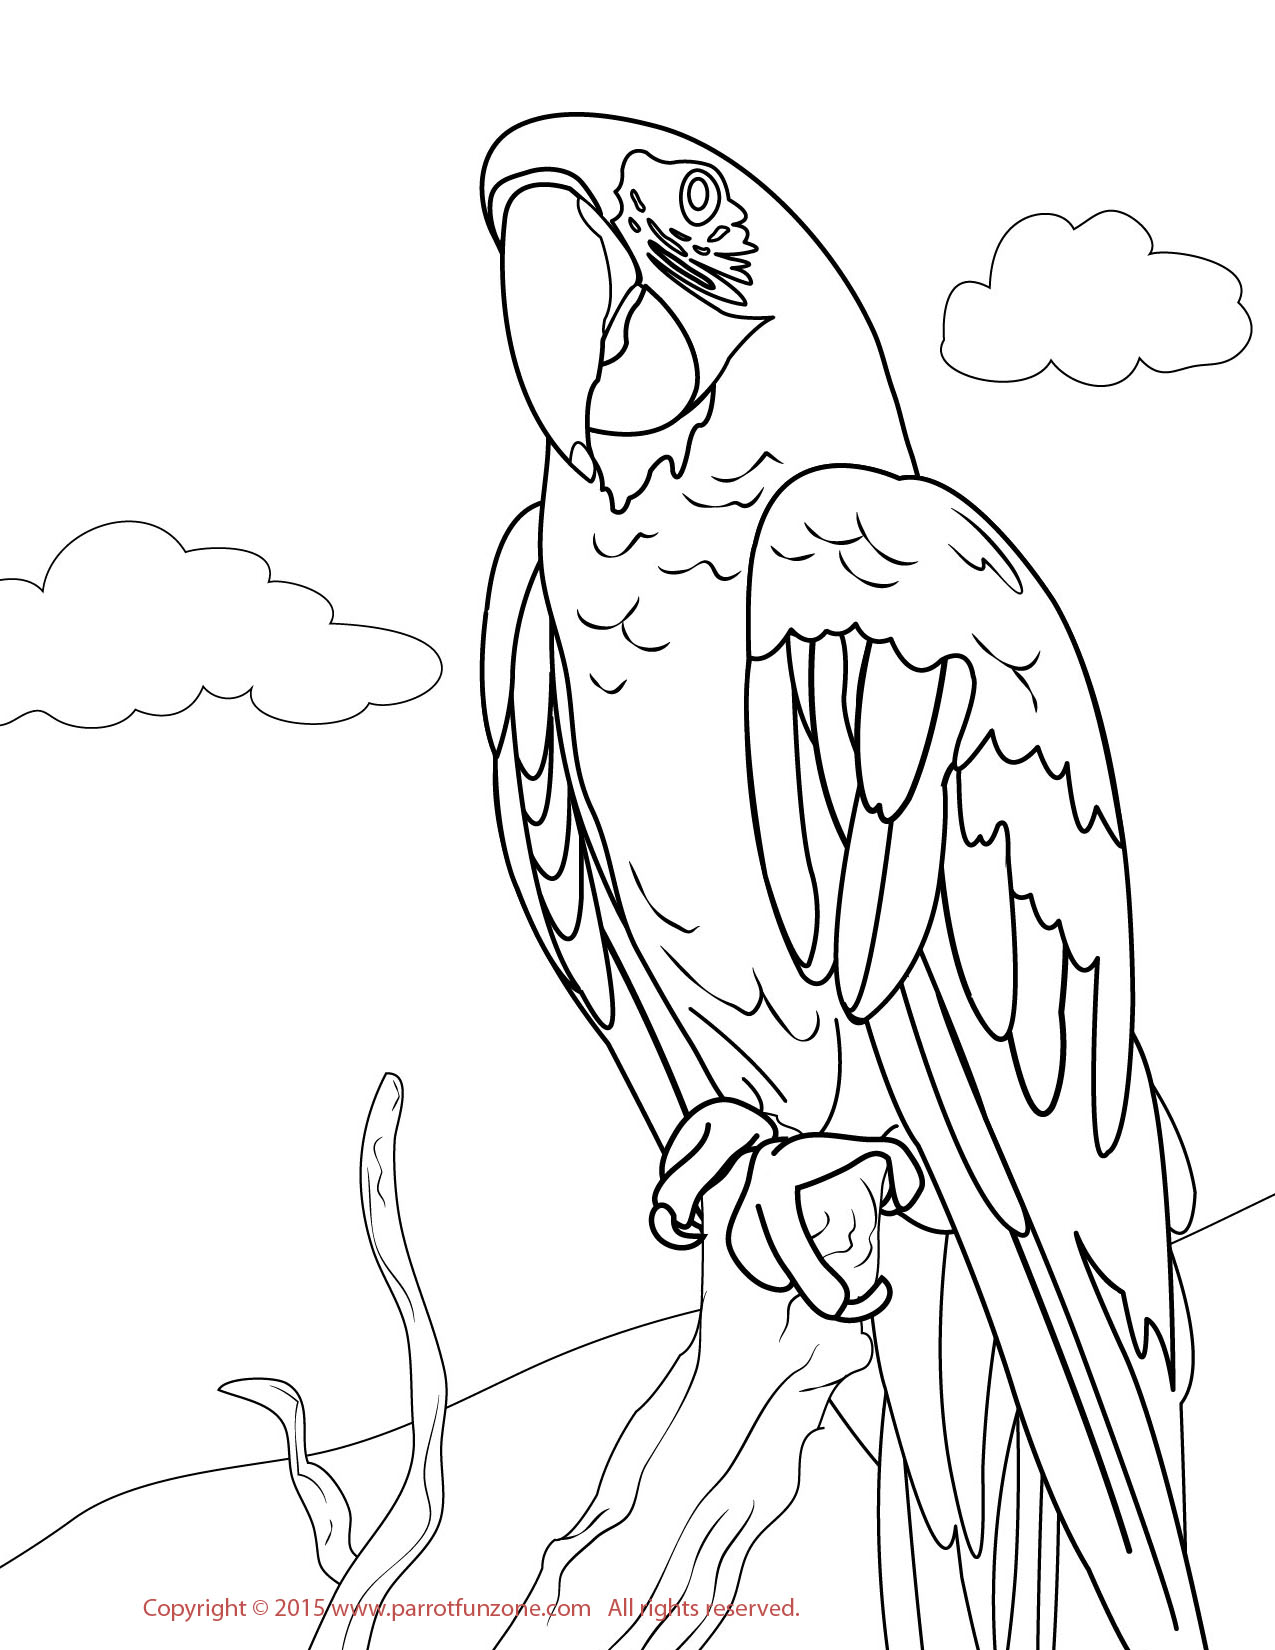 greenwing macaw coloring page